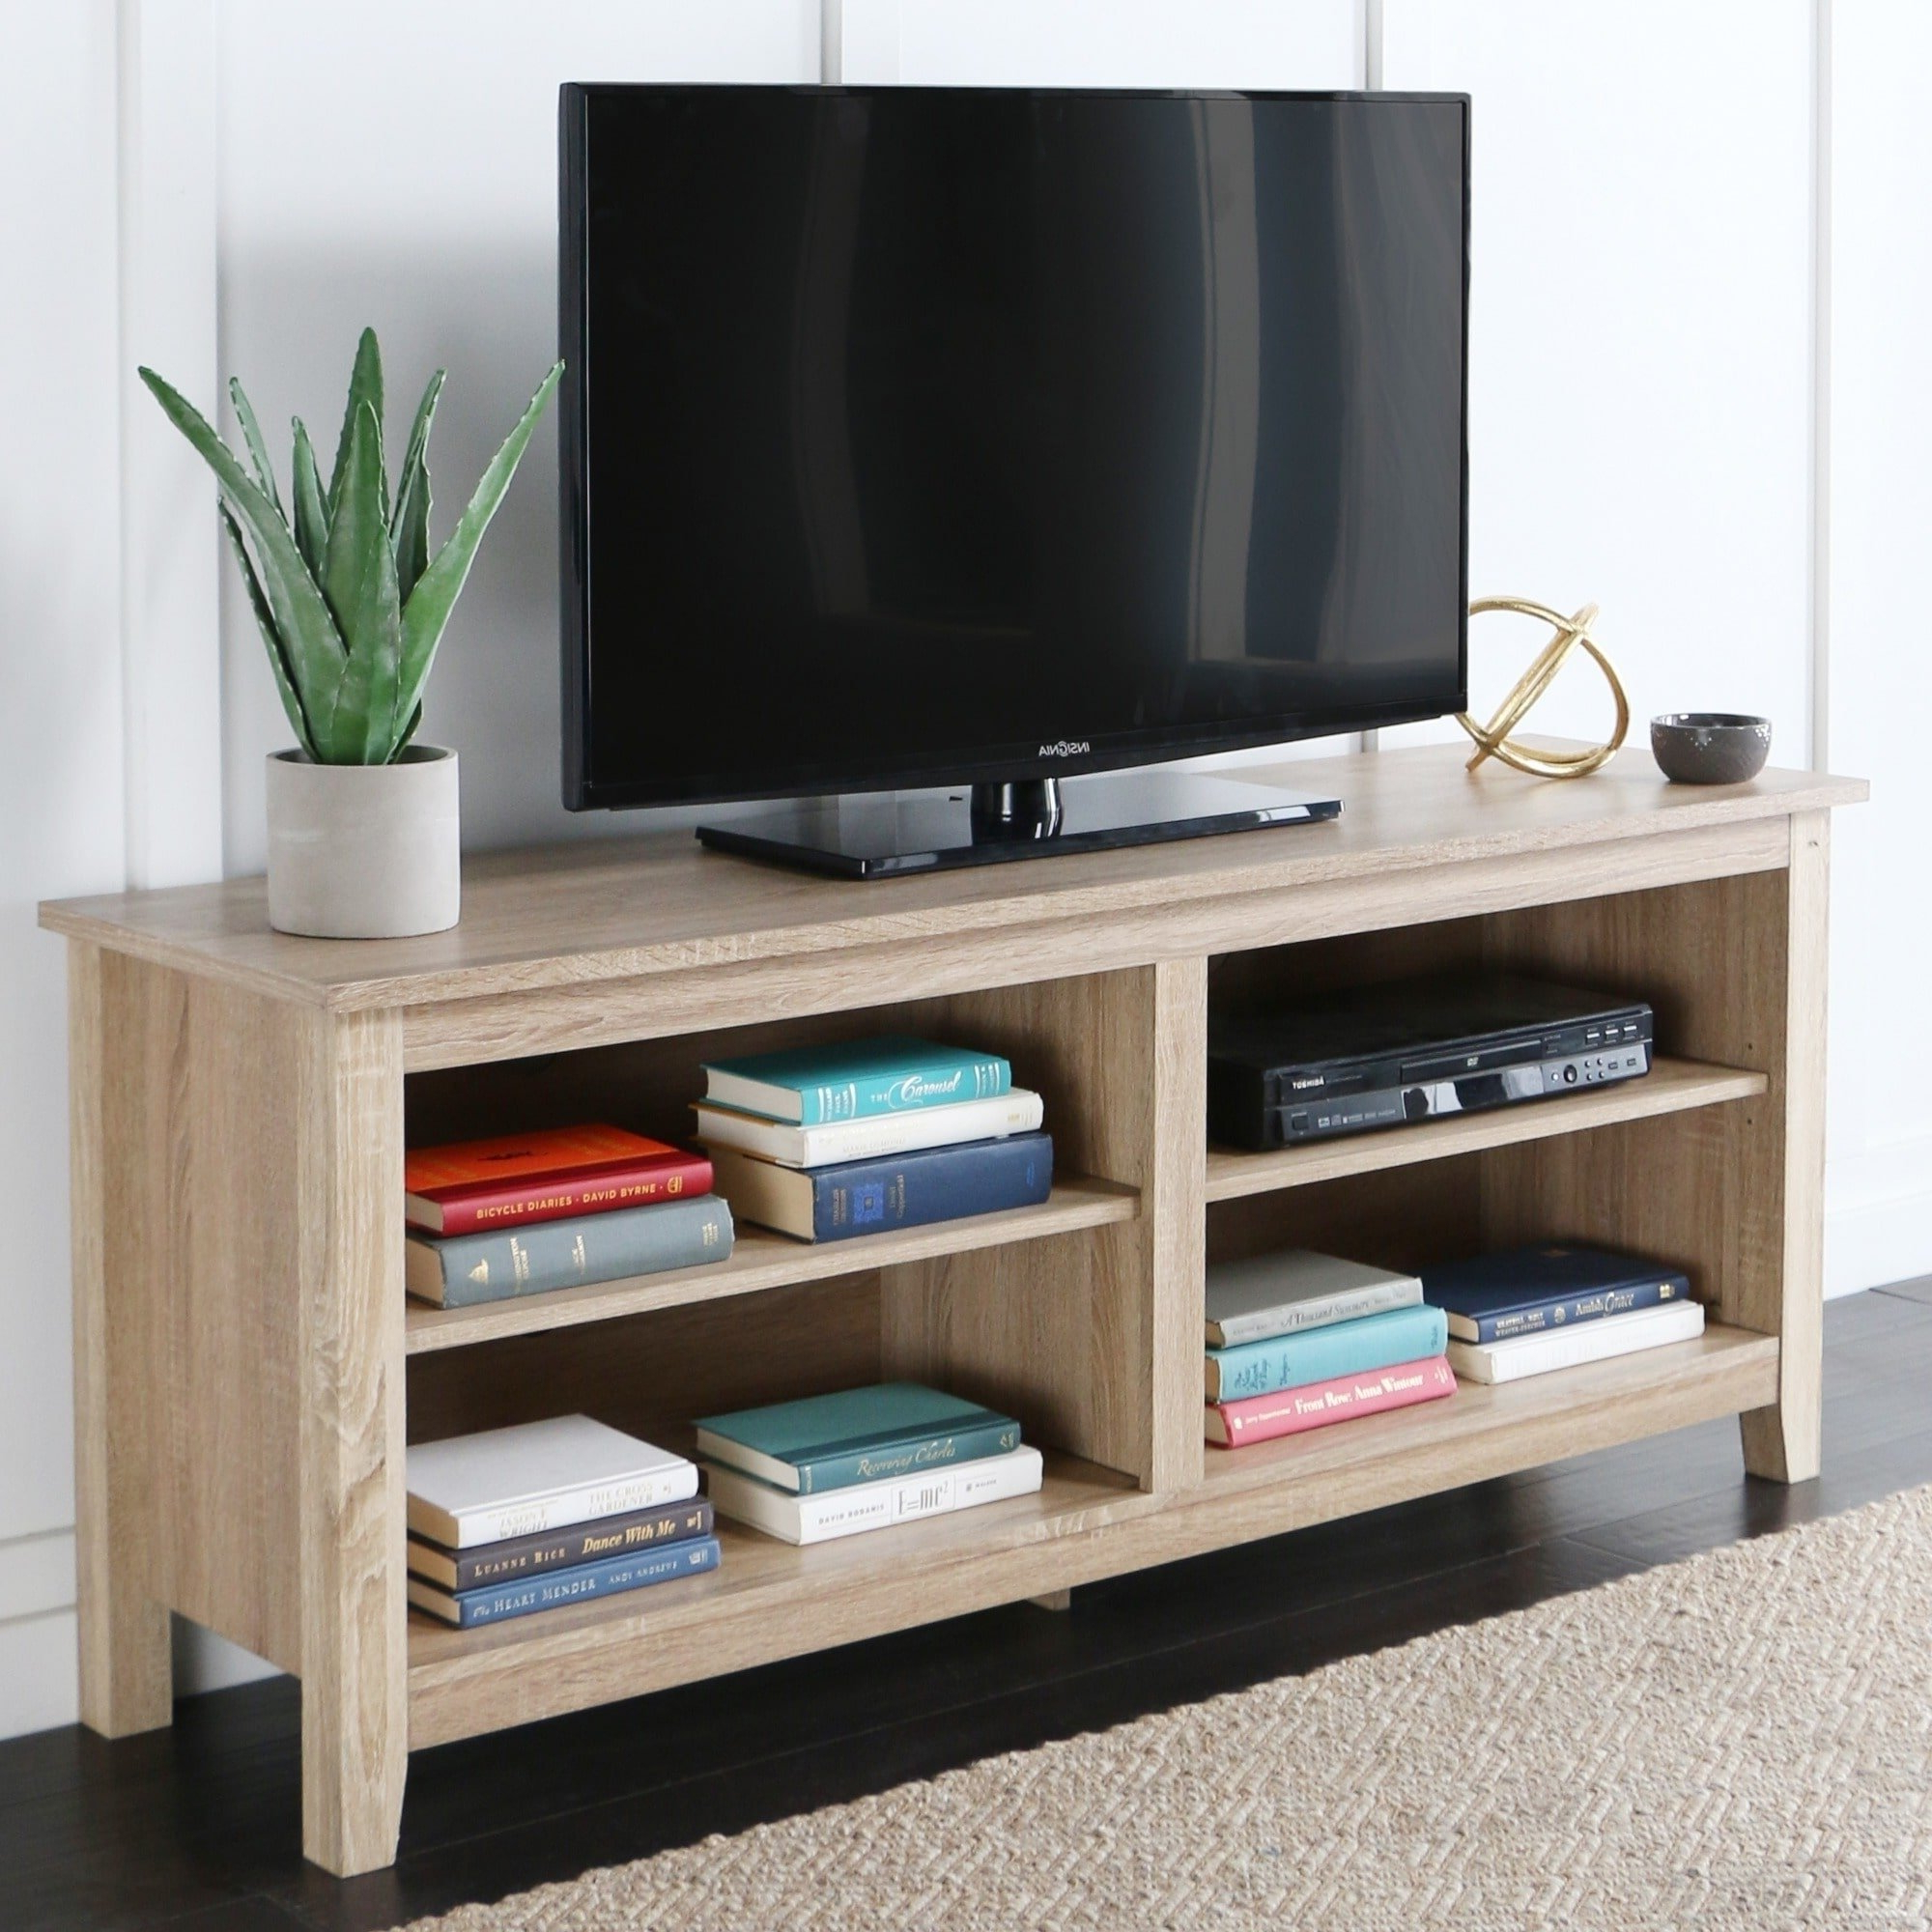 Wood Tv Stands Pertaining To Latest Shop 58 Inch Natural Wood Tv Stand – Free Shipping On Orders Over (View 19 of 20)